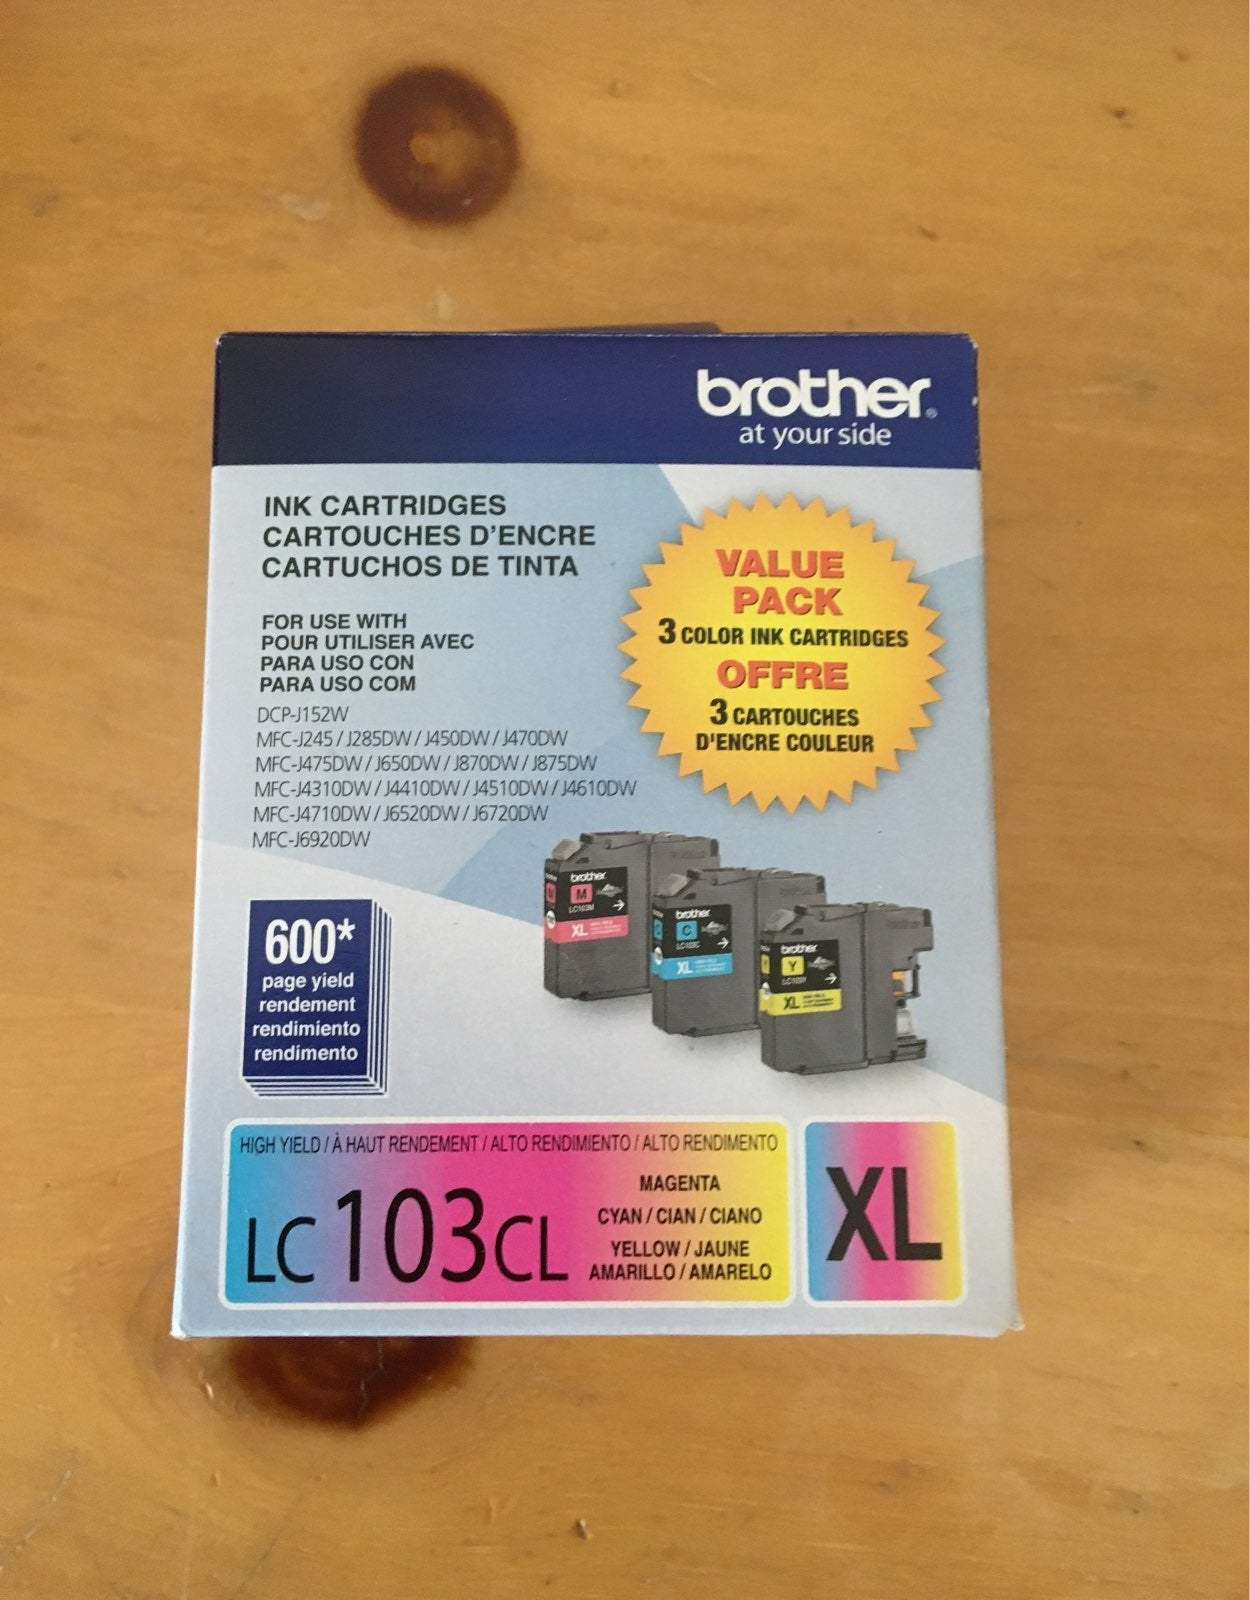 Brother LC103CL XL Ink